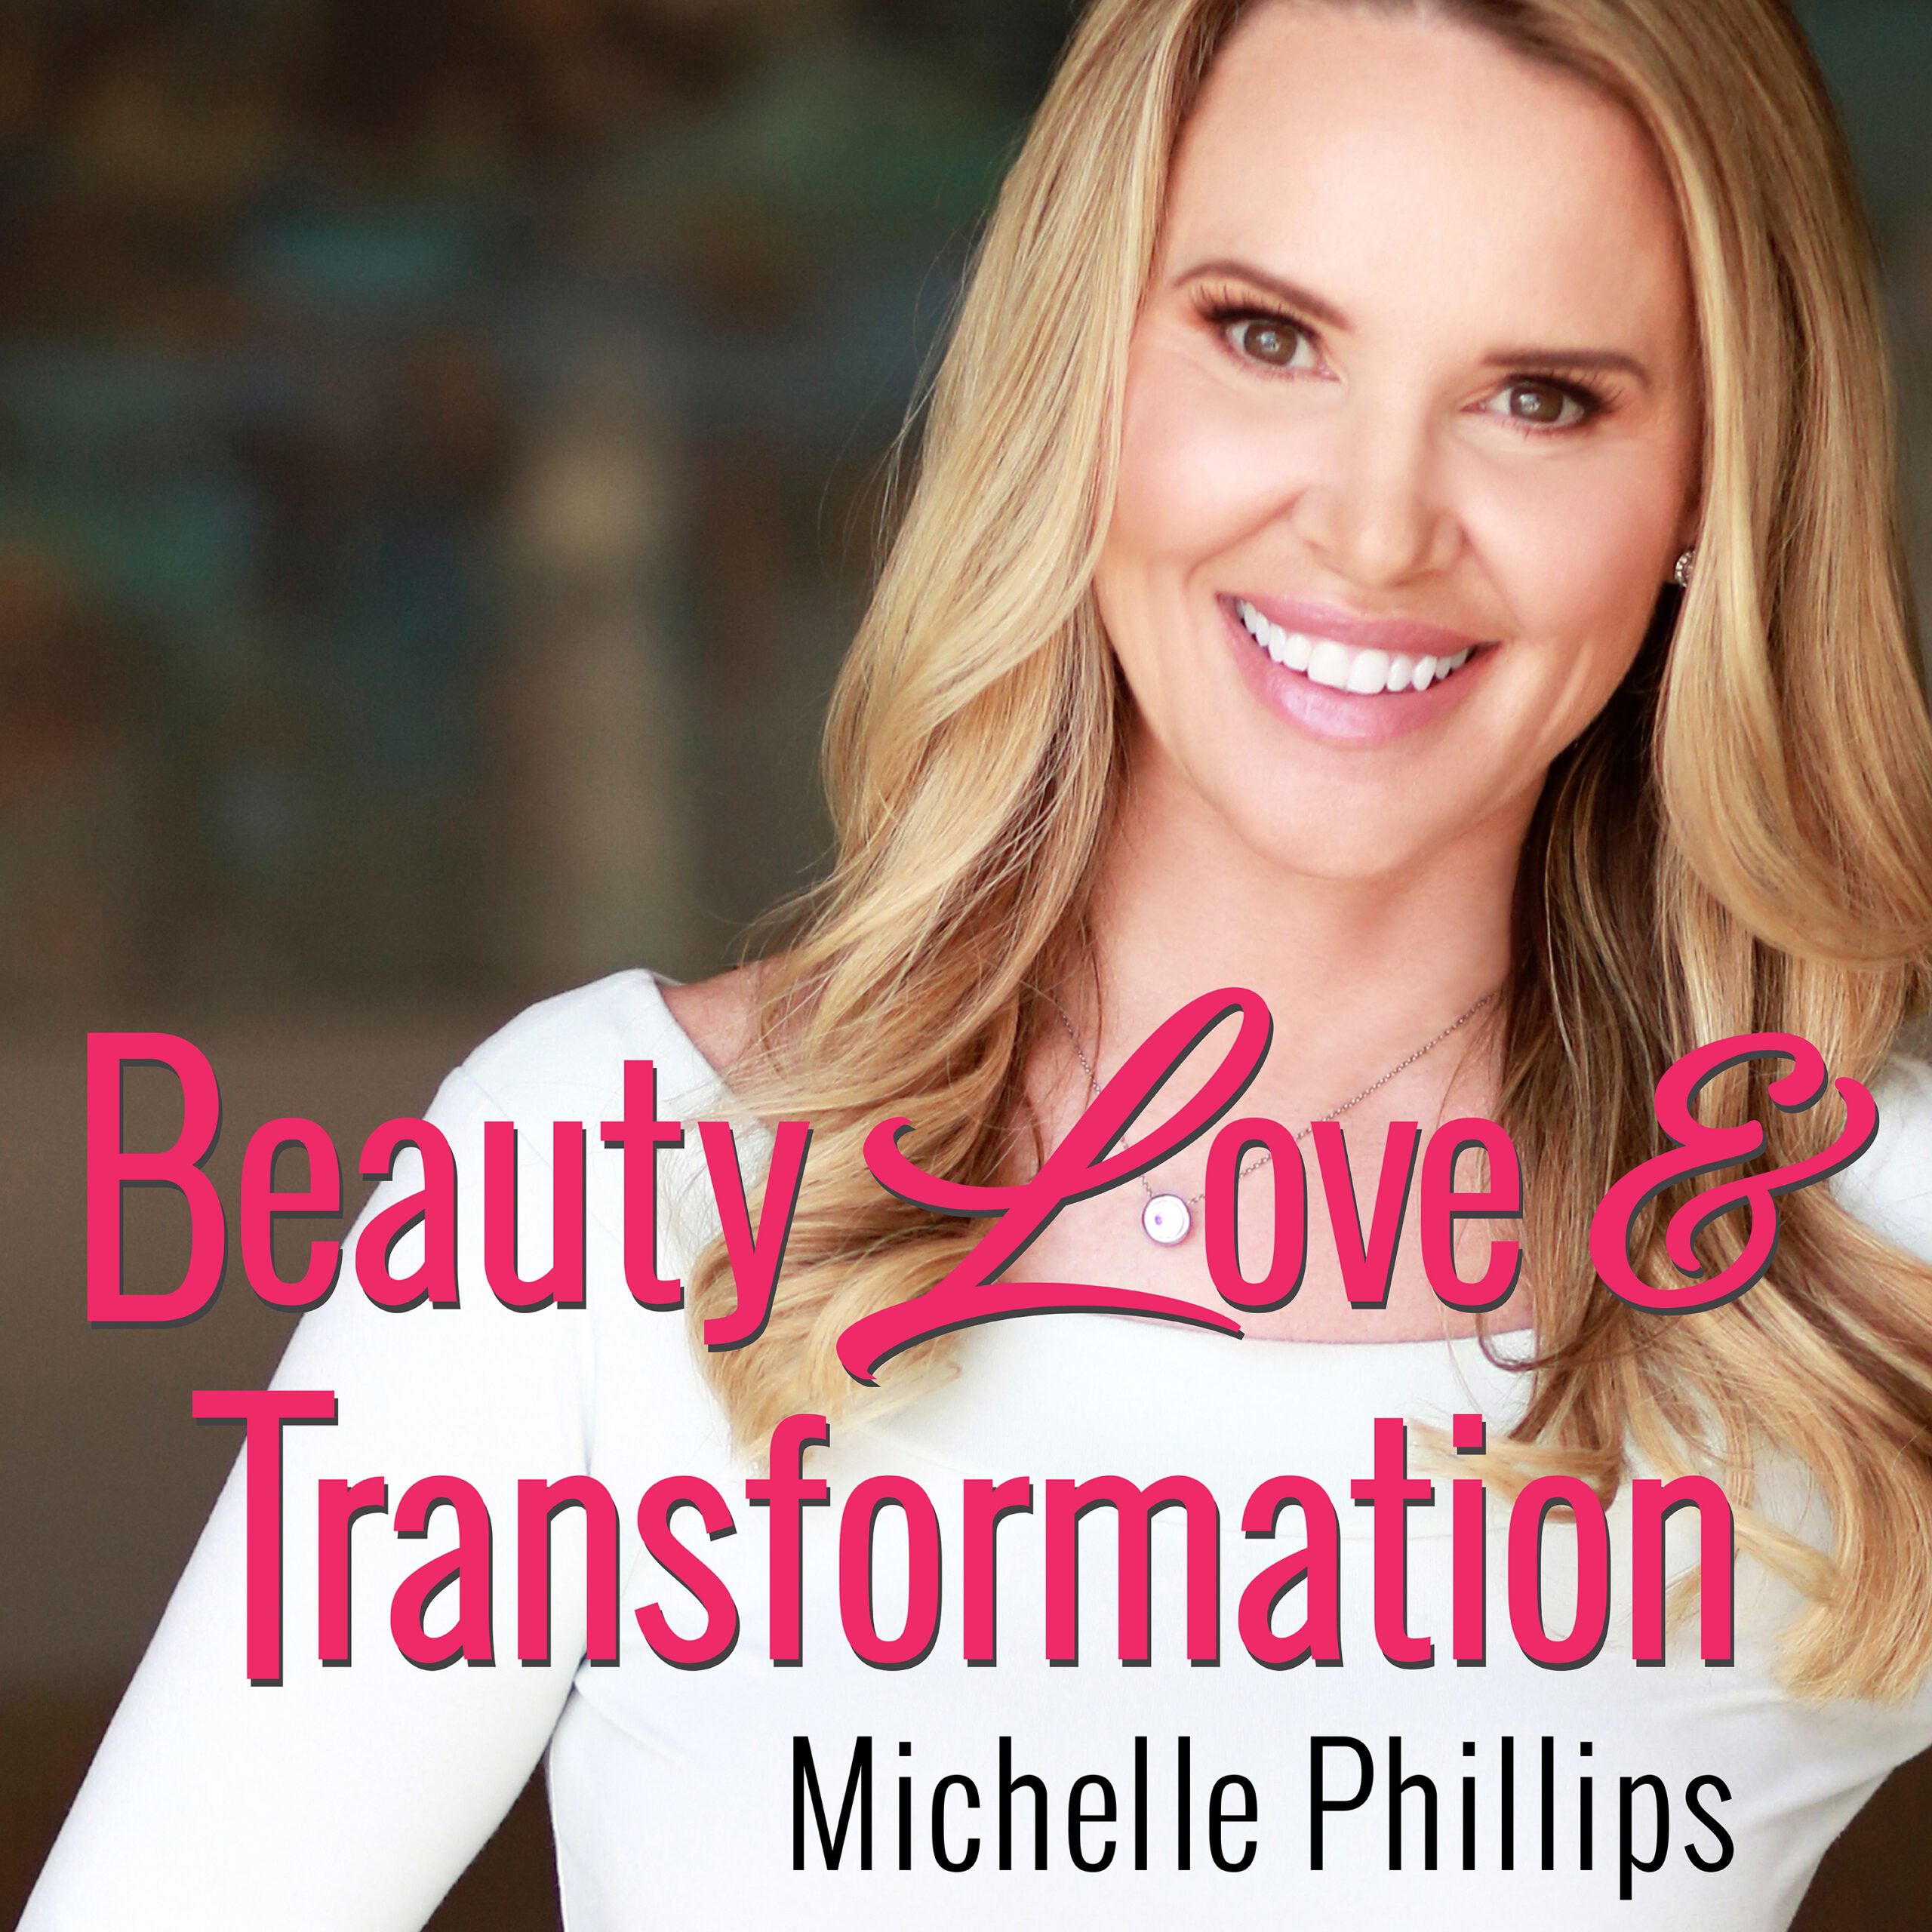 Beauty, Love & Transformation with Michelle Phillips | Independent Podcast Network